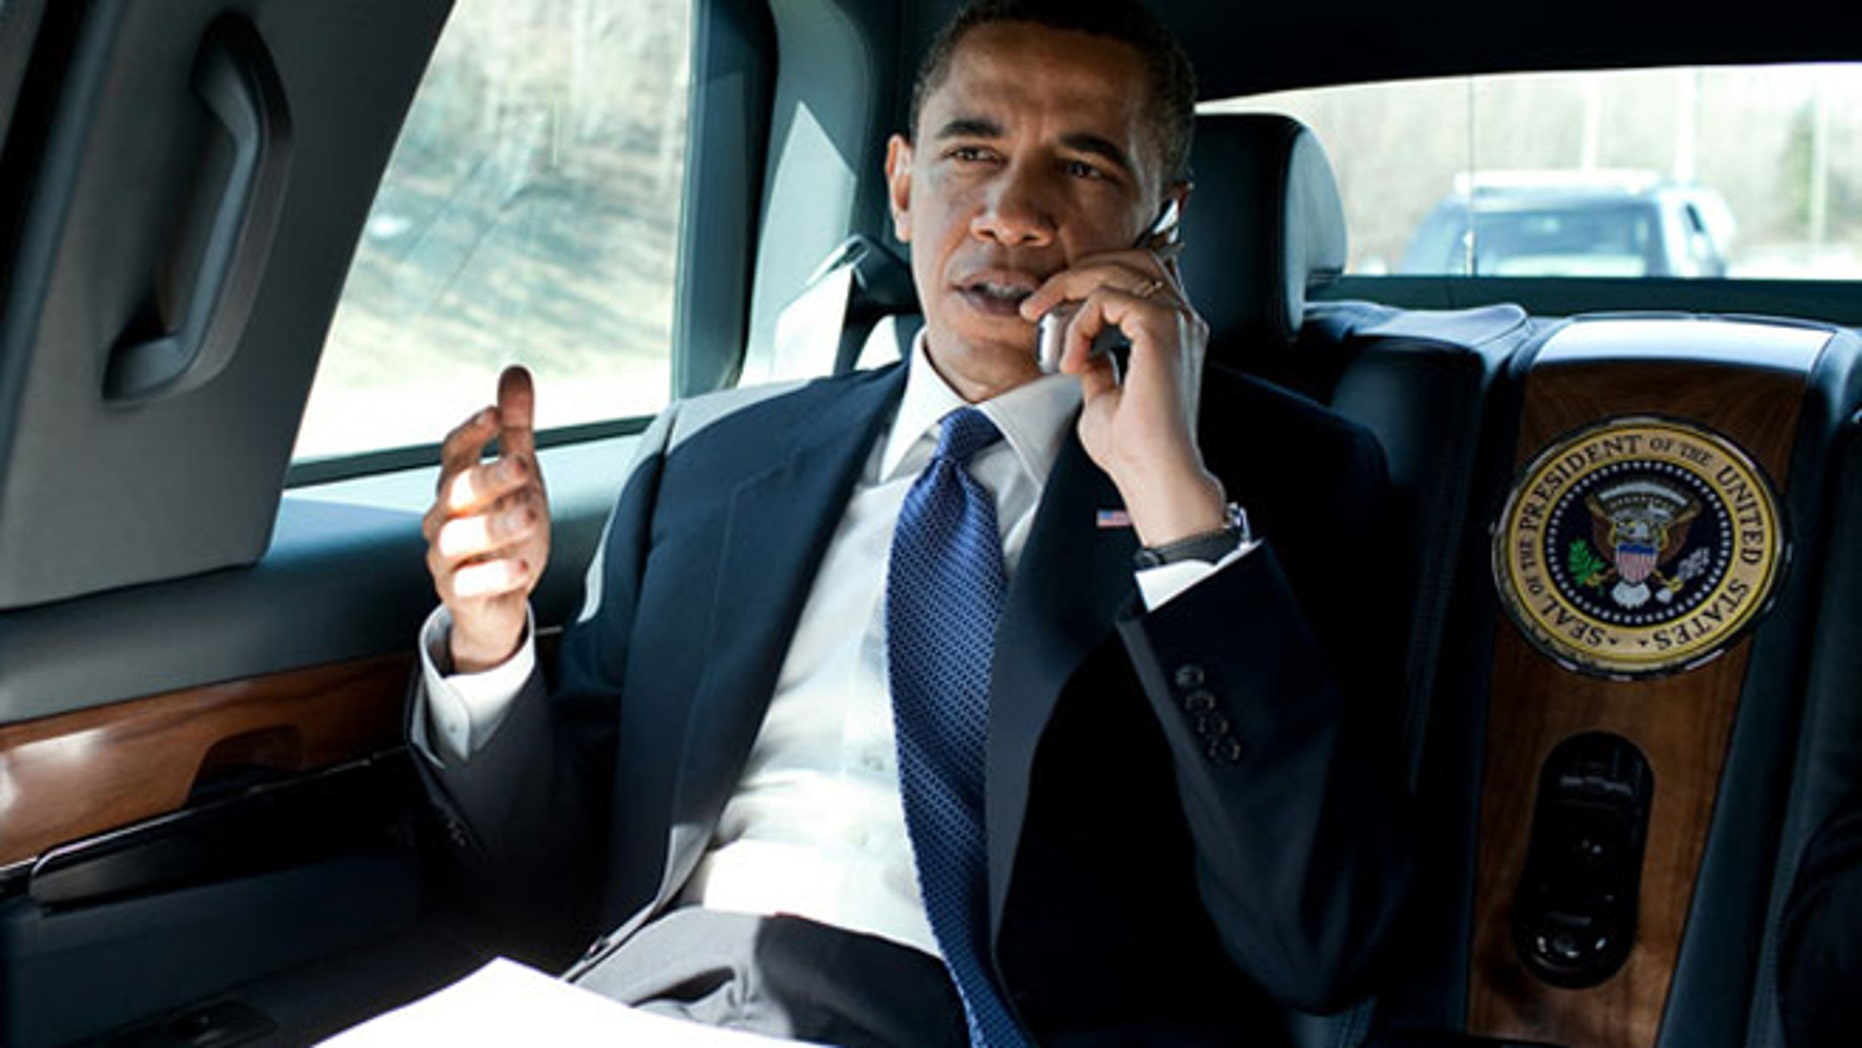 President Barack Obama speaks on an unidentified flip phone in the presidential limousine in northern Virginia in March 2010.